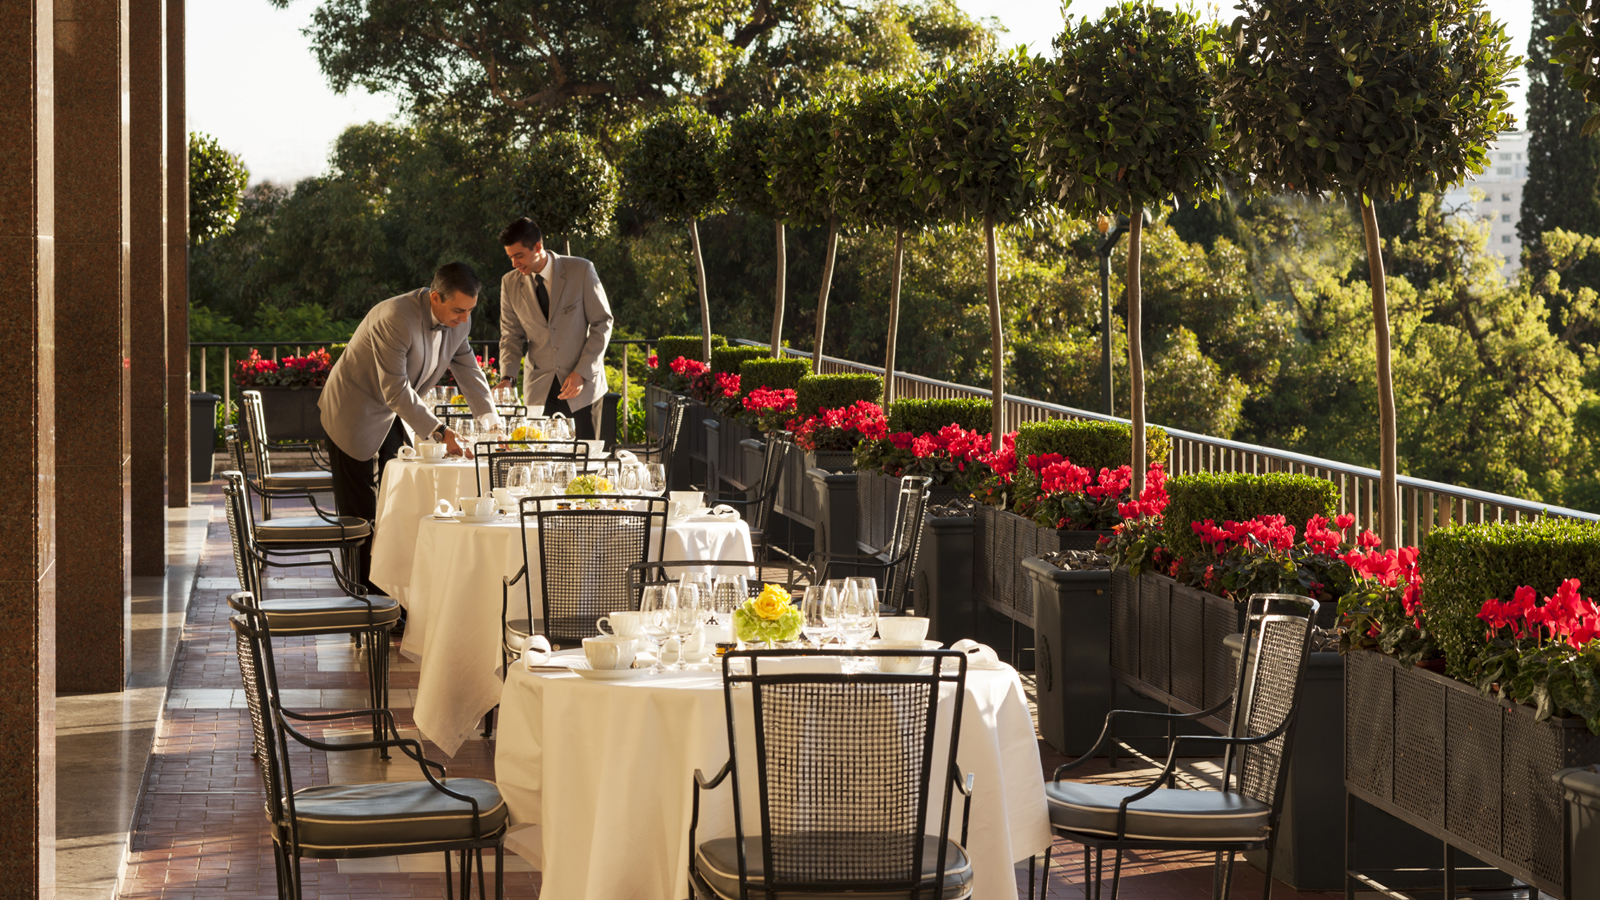 Bed and Breakfast Package at Four Seasons Hotel Ritz Lisbon